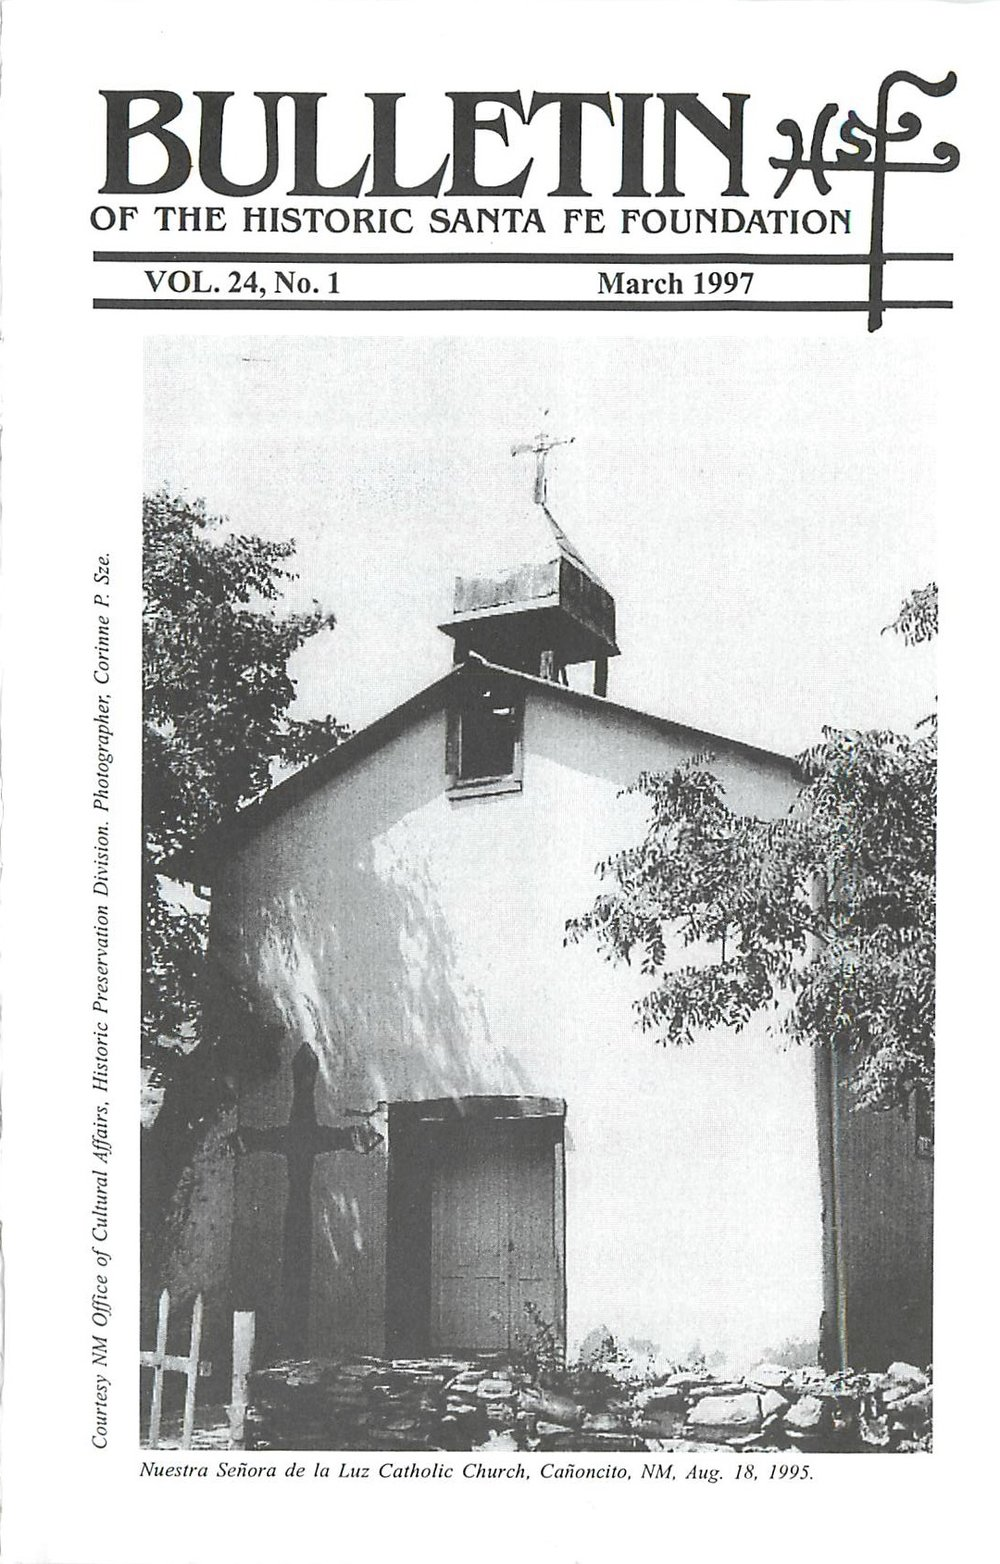 1997 HSFF Bulletin Vol.24 No.1 Cover